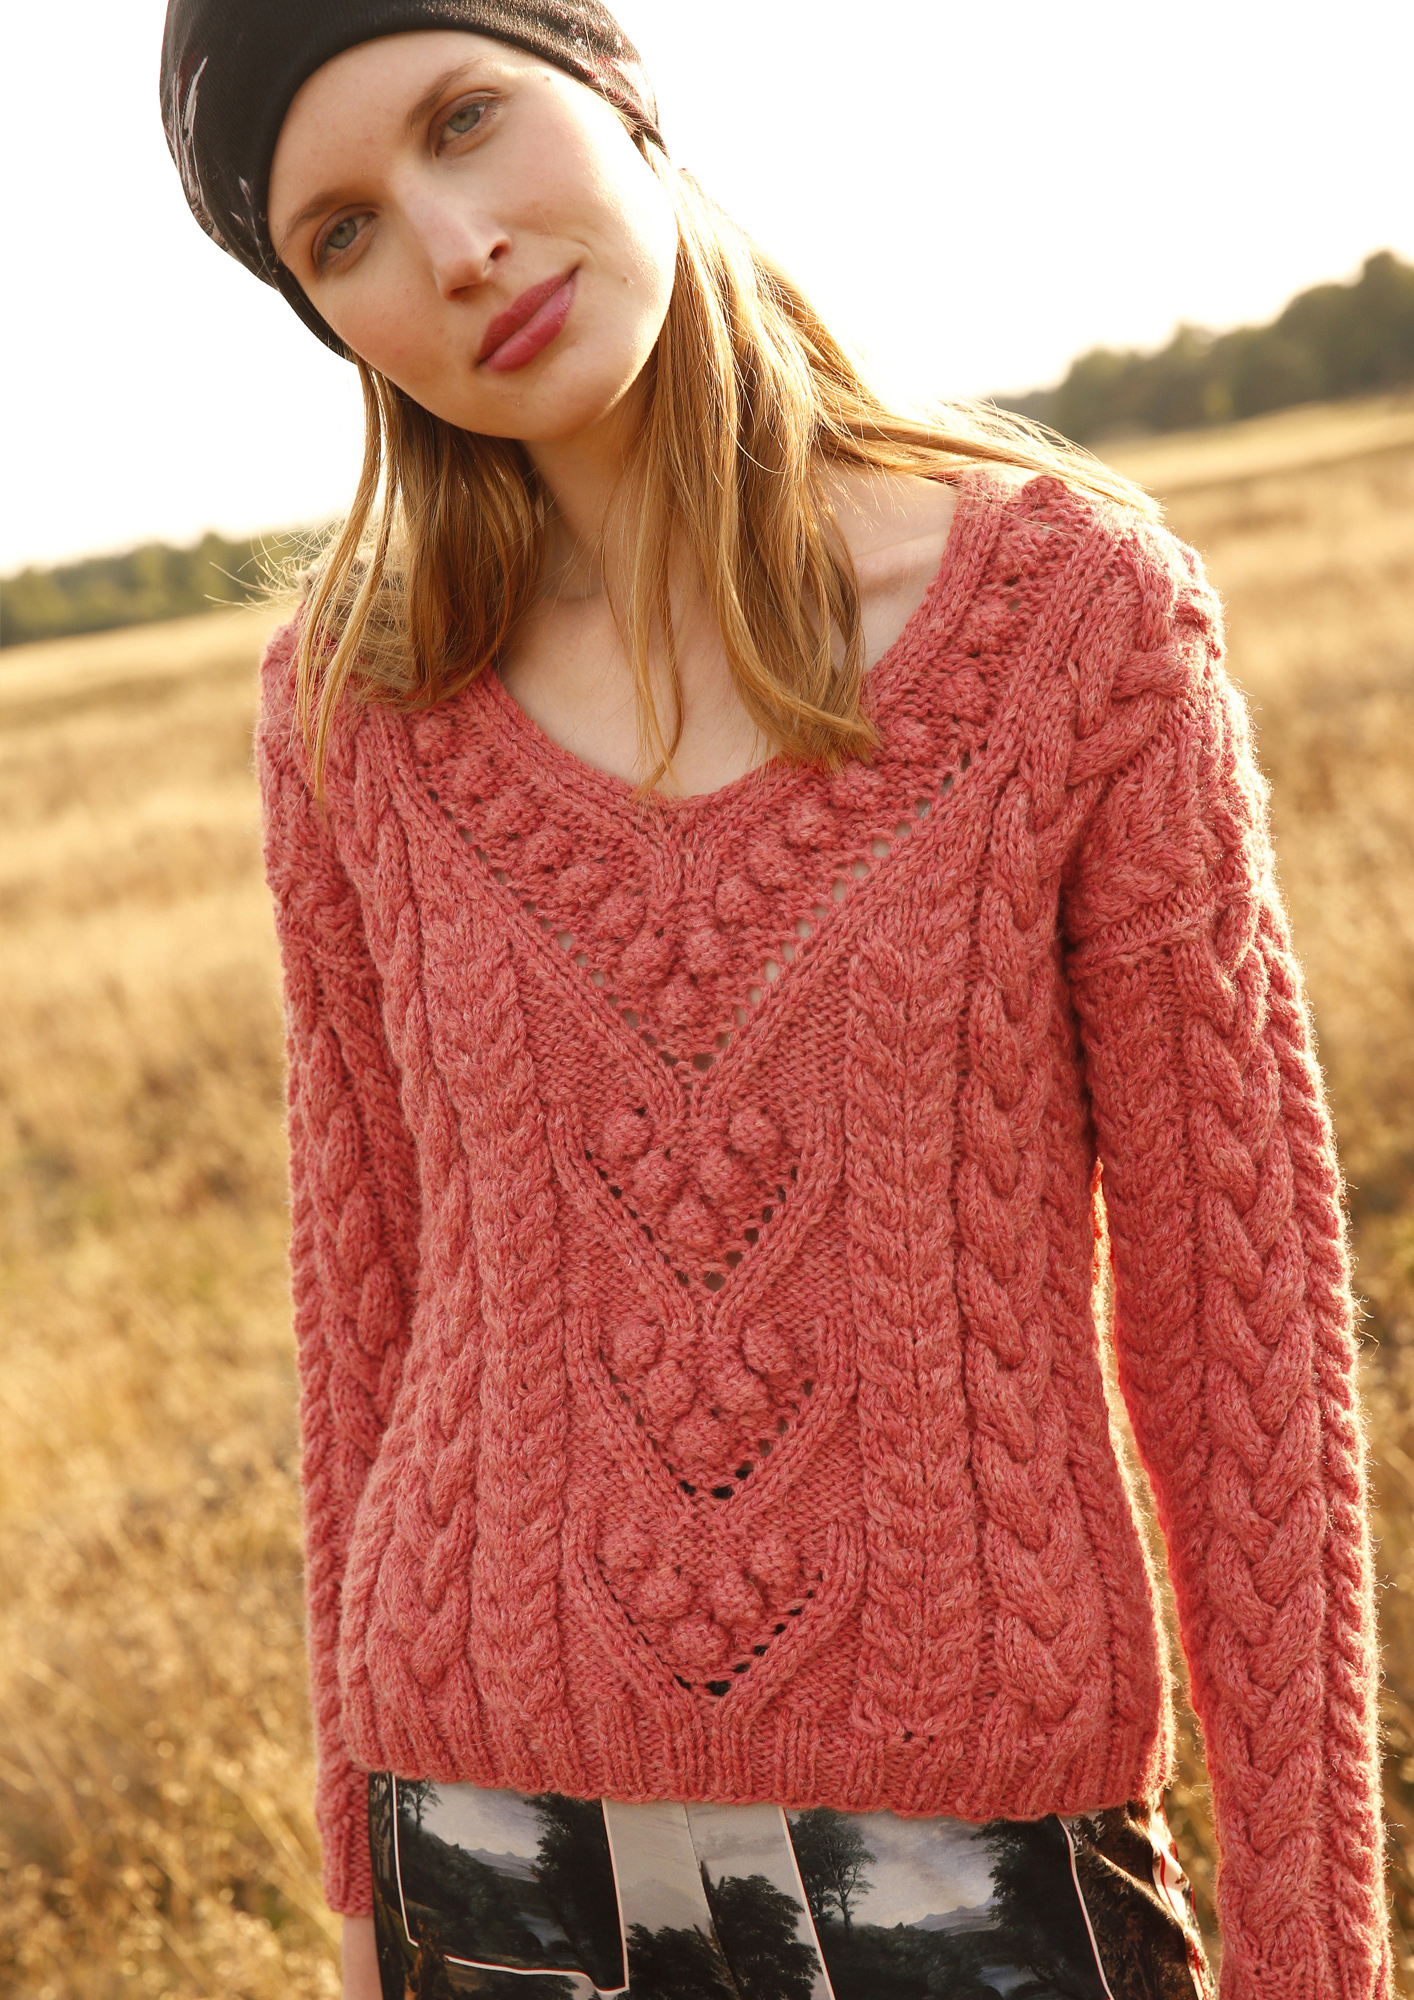 46cc69d0f511 Preview  Knit pattern – Jumper with cable knit and bobbles ...